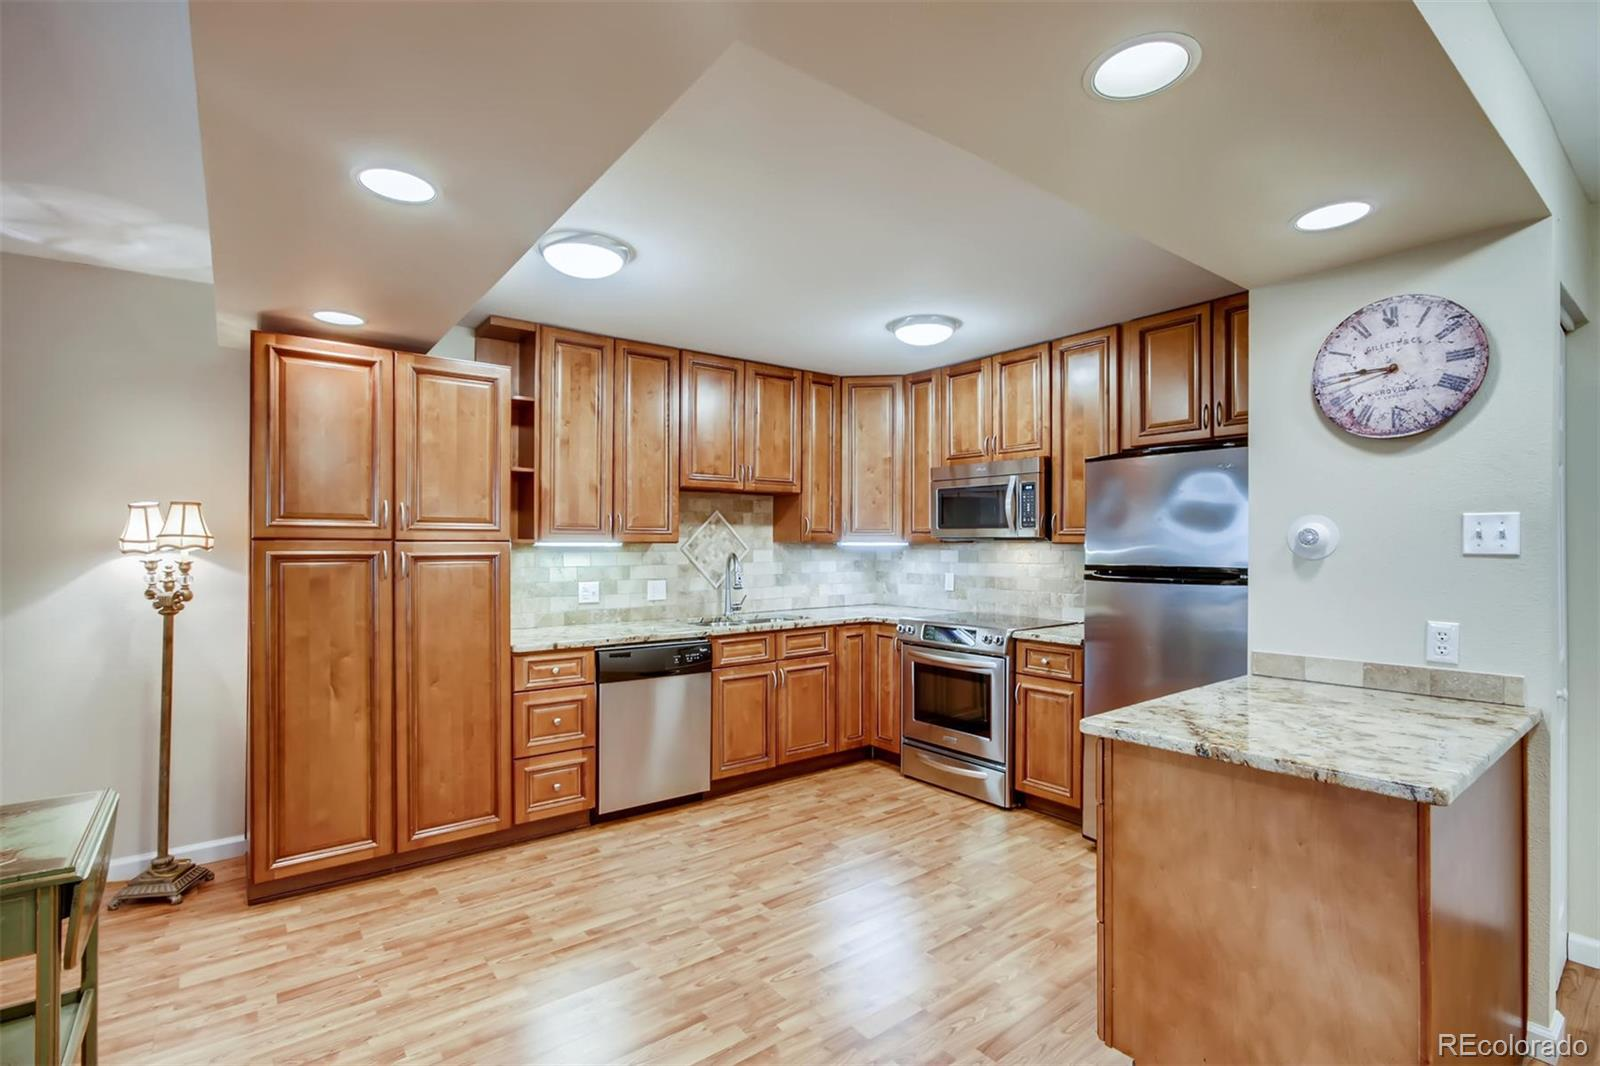 Do not miss the opportunity to own this Remodeled and Sought After first floor condo that is approximately 500 ft from the Community Center.  1200 sf, 2 bedroom,2 bathroom open concept condo.  New air conditioners.  Maple soft-close kitchen & bathroom cabinets with granite counters.  Stainless Appliances.  There is a bonus space by kitchen where you could place a bistro table & 2 chairs or a china cabinet.  Plenty of space in kitchen for dining room table.  Condo comes with underground parking space near elevator.   Antique fireplace with electric flame & heated log unit included.  Large master suite with walk-in closet.  Extra storage closet on 3rd floor in building.  Windsor Gardens is Denver's premier Active 55+ community. At the Community Center you can take dance, glass, ceramic, wood working classes.  Or enjoy the billards room, golfing, library, movie night or live theater.  Public bus in front of building.  Age restricted community.  HOA includes:  Property Taxes, Heat, Water, Sewer, Trash, Recycling, Exterior Maintenance, Snow Removal, Clubhouse, Gym, 2 pools, Underground Parking, Common Area Grounds Maintenance.  Buyer to verify information.Full HOA docs available at www.windsorgardensdenver.org